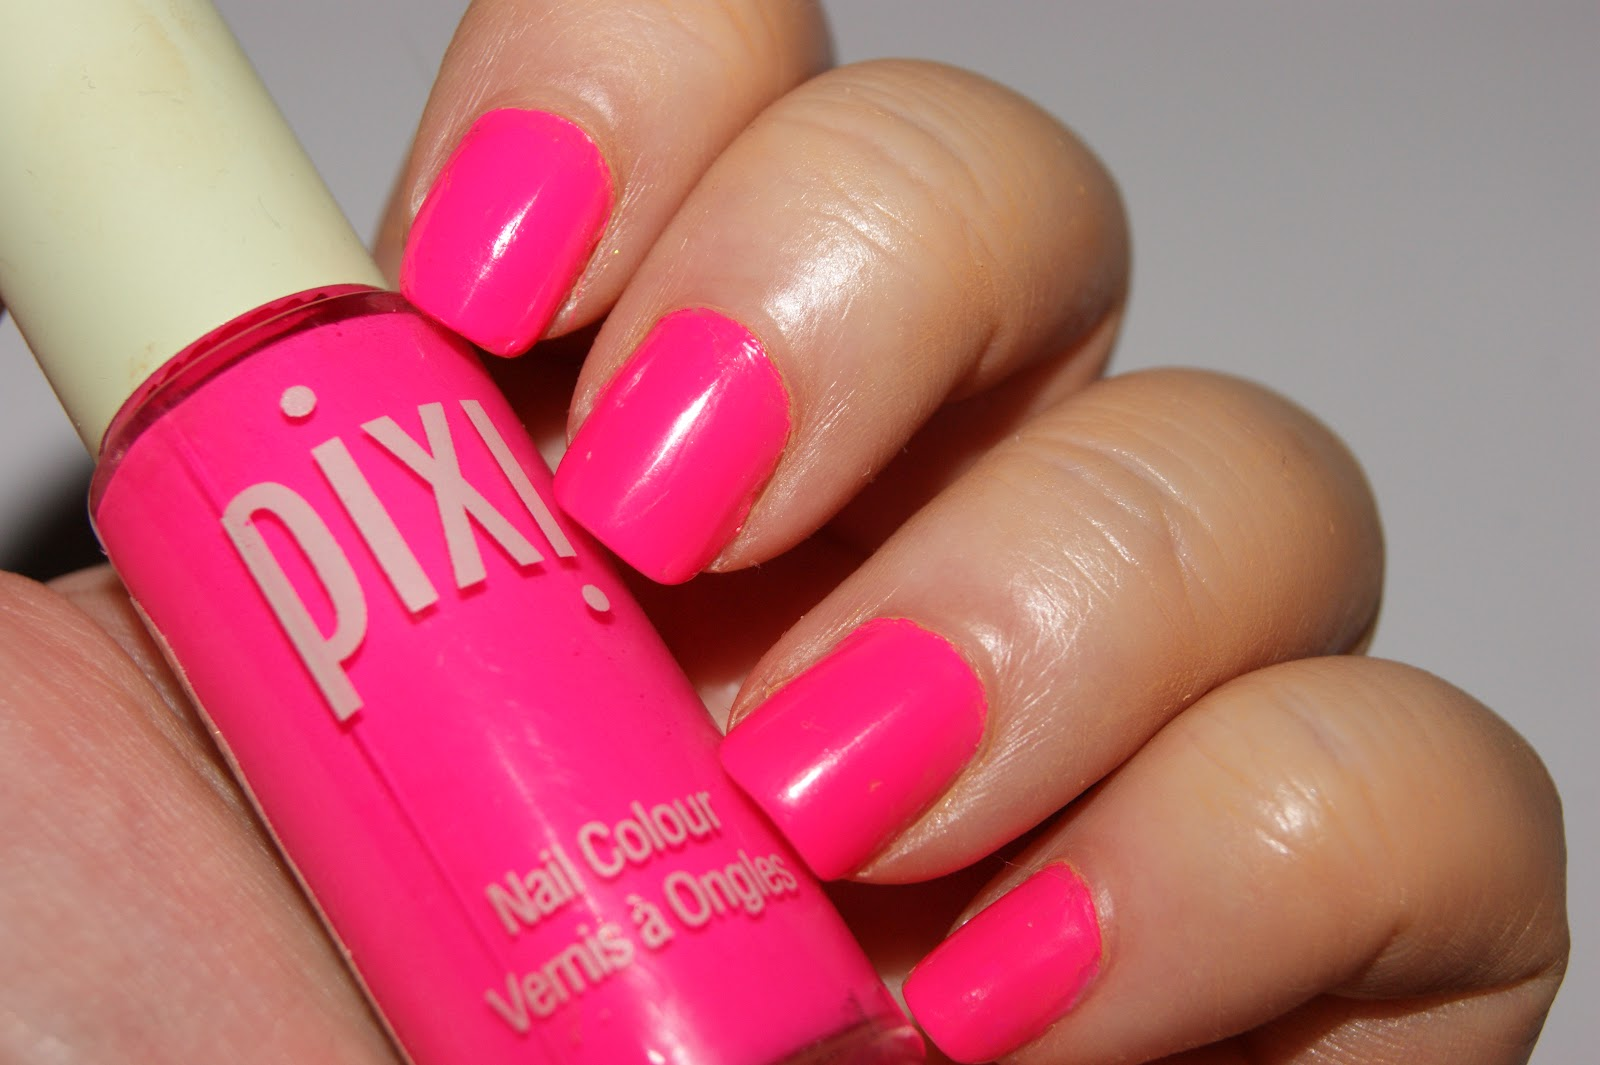 The Polish I Am Speaking Of Is Course Pixi Nail Colour In 03 Summer Pink Which Best Neon Have Ever Had Good Fortune Testing